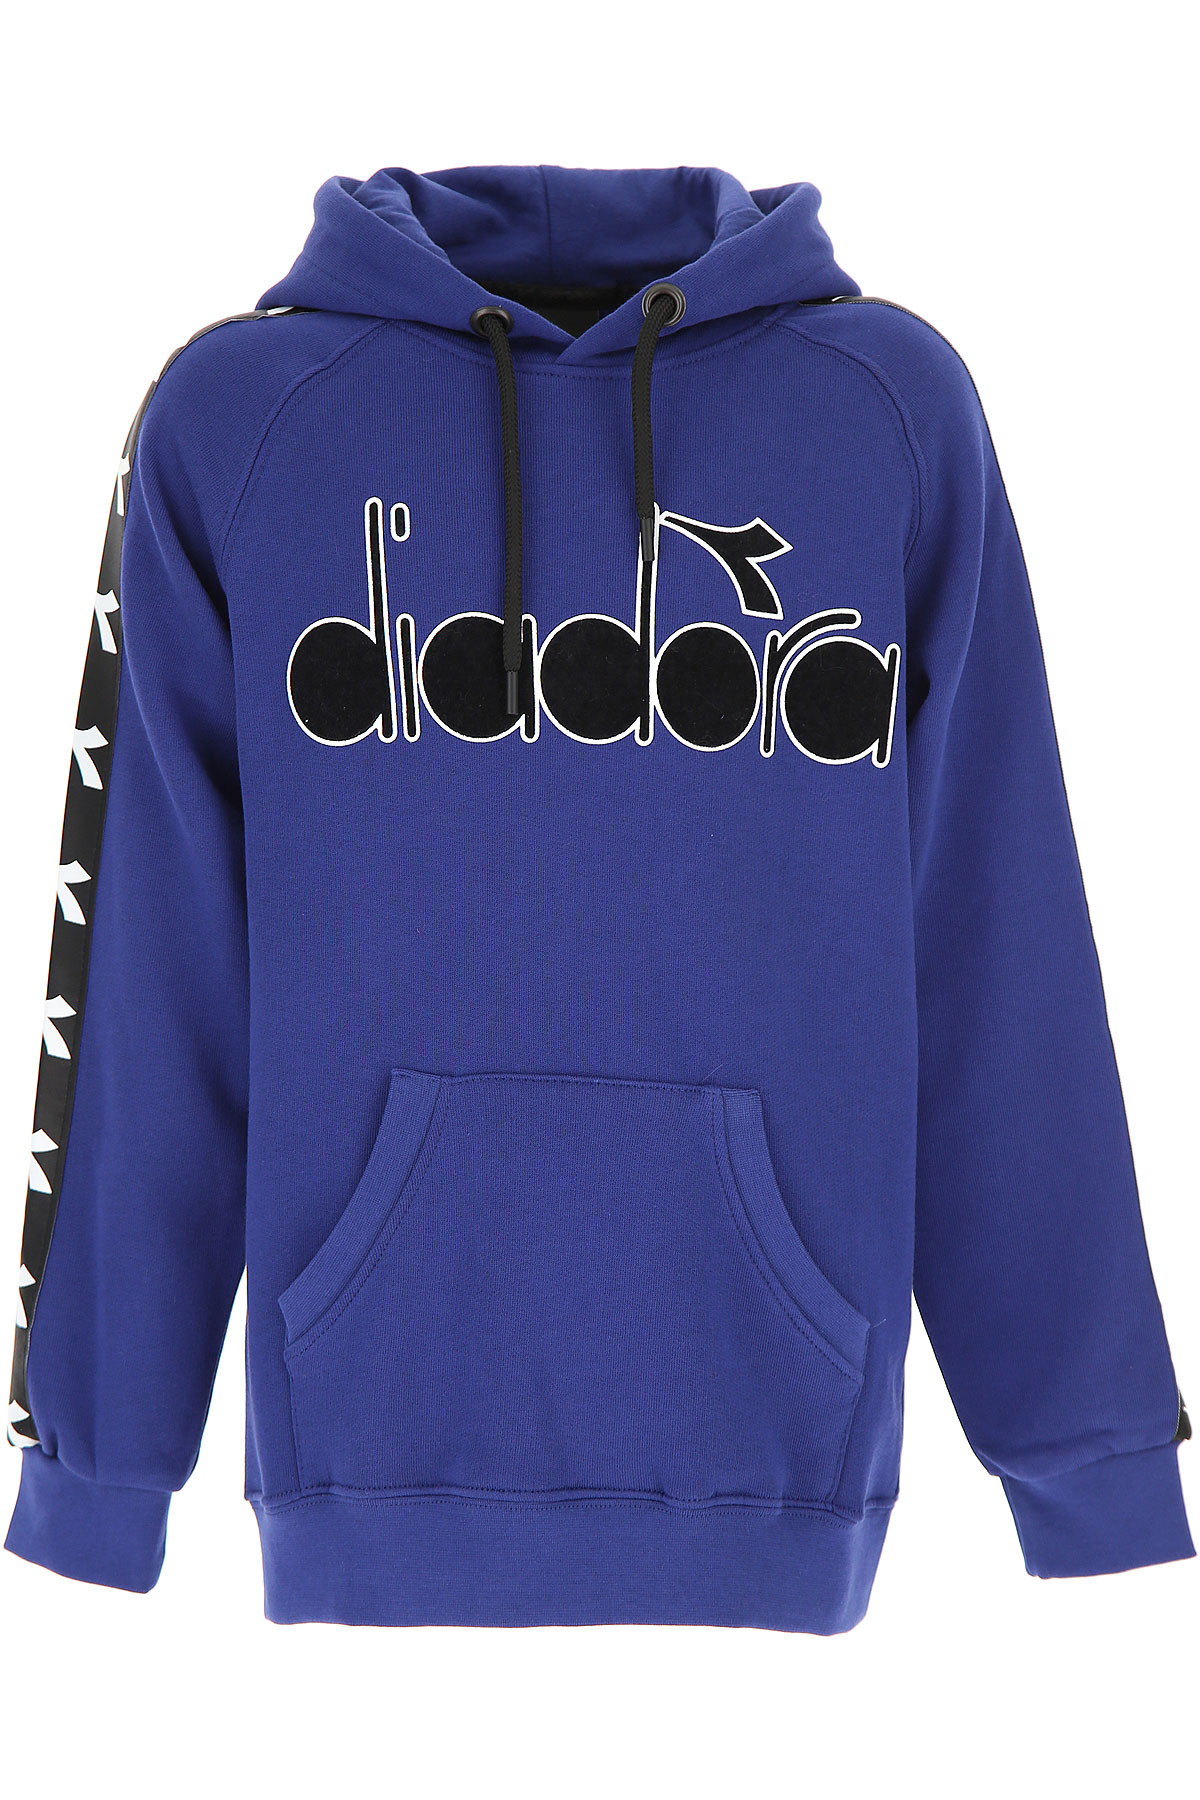 Image of Diadora Kids Sweatshirts & Hoodies for Boys, Blue, Cotton, 2017, 10Y 14Y 8Y